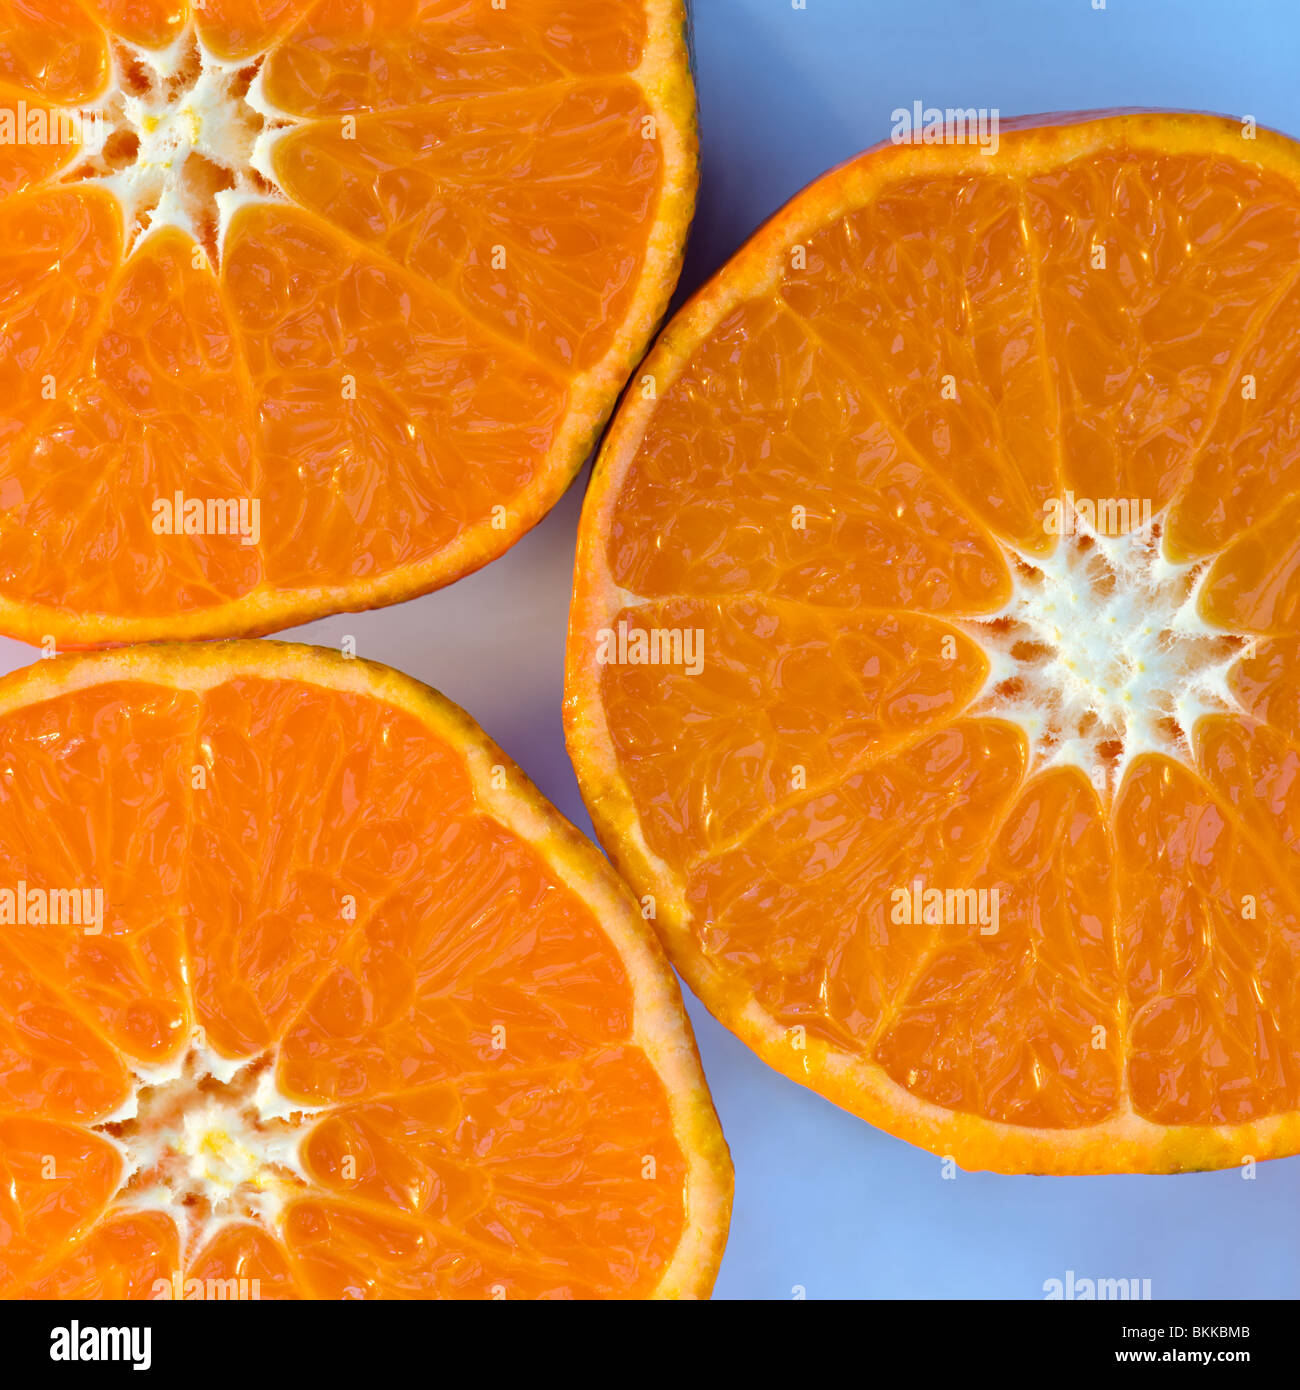 Studio shot of Clementine orange halves, which are a variety of mandarin orange, displayed on a muted white background - Stock Image